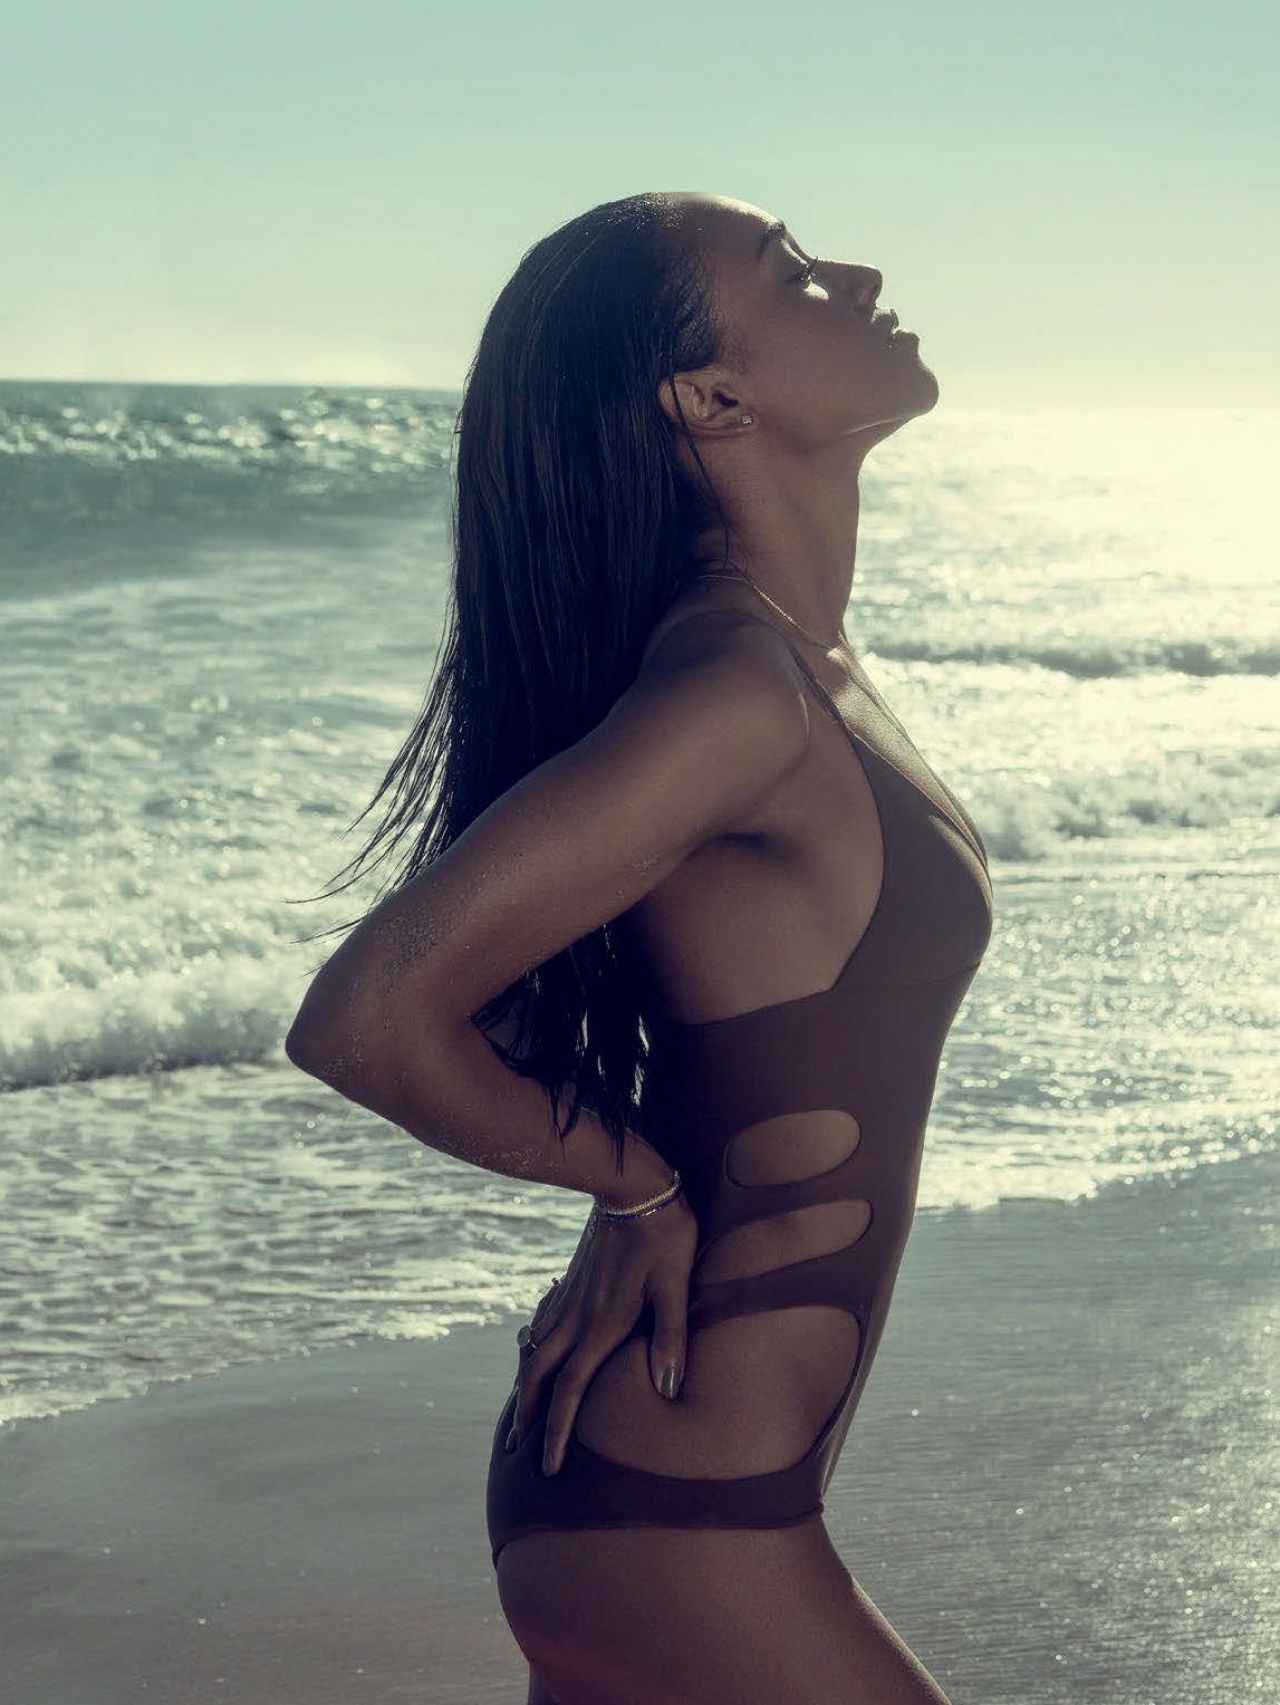 Candice Patton - Photoshoot for Maxim Magazine December 2014/January 2015